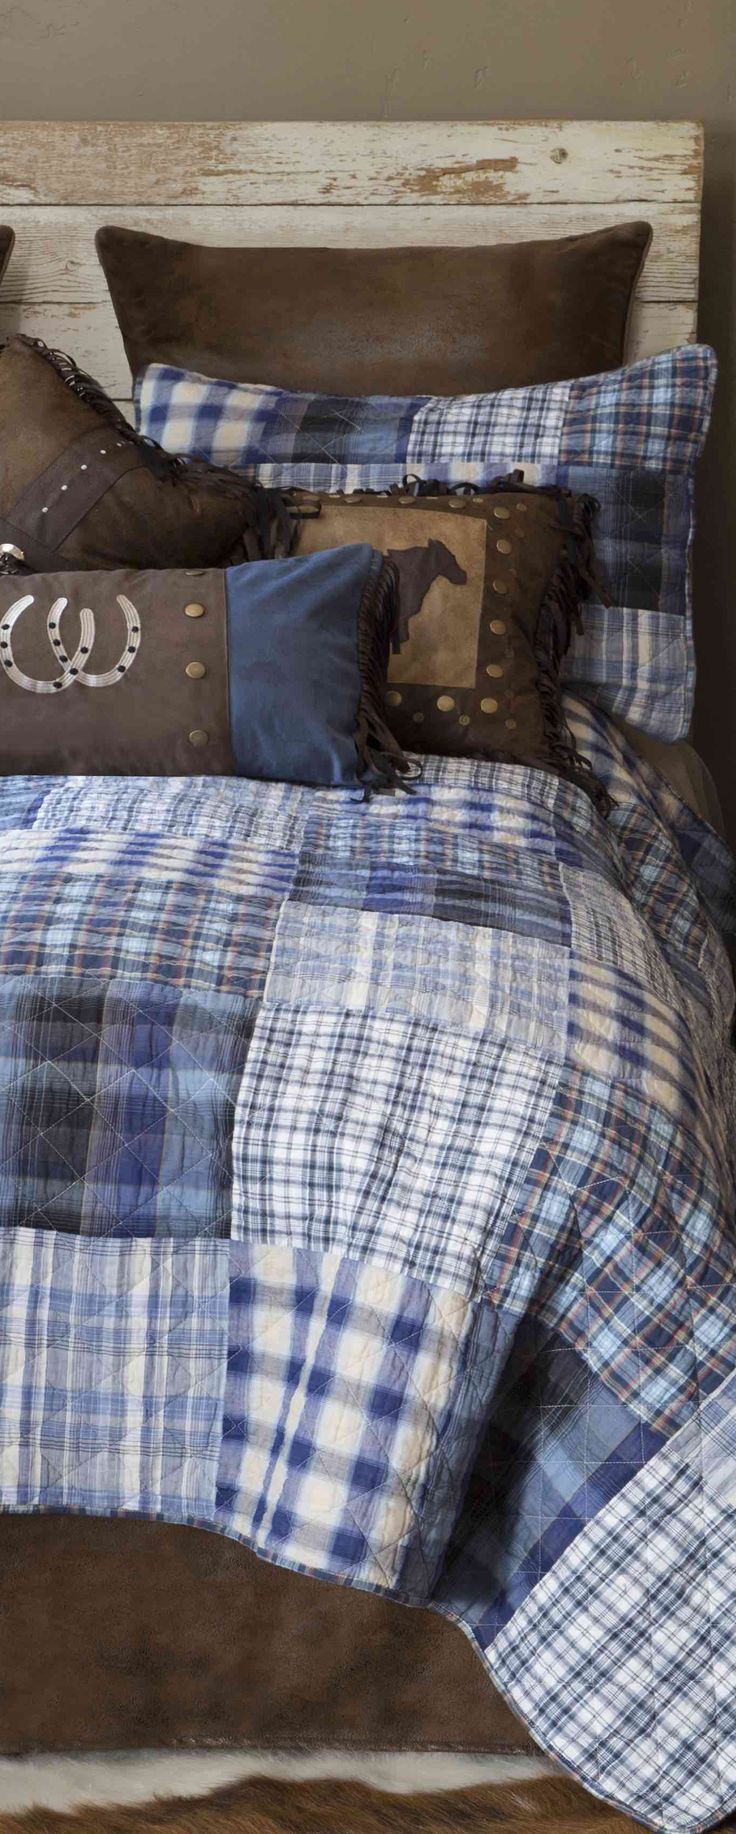 Western Bedding: Blue and white plaids reflect the beauty of an open sky on this patchwork cotton quilt bedding with rugged faux leather accents, rivets, conchos and embroidery.